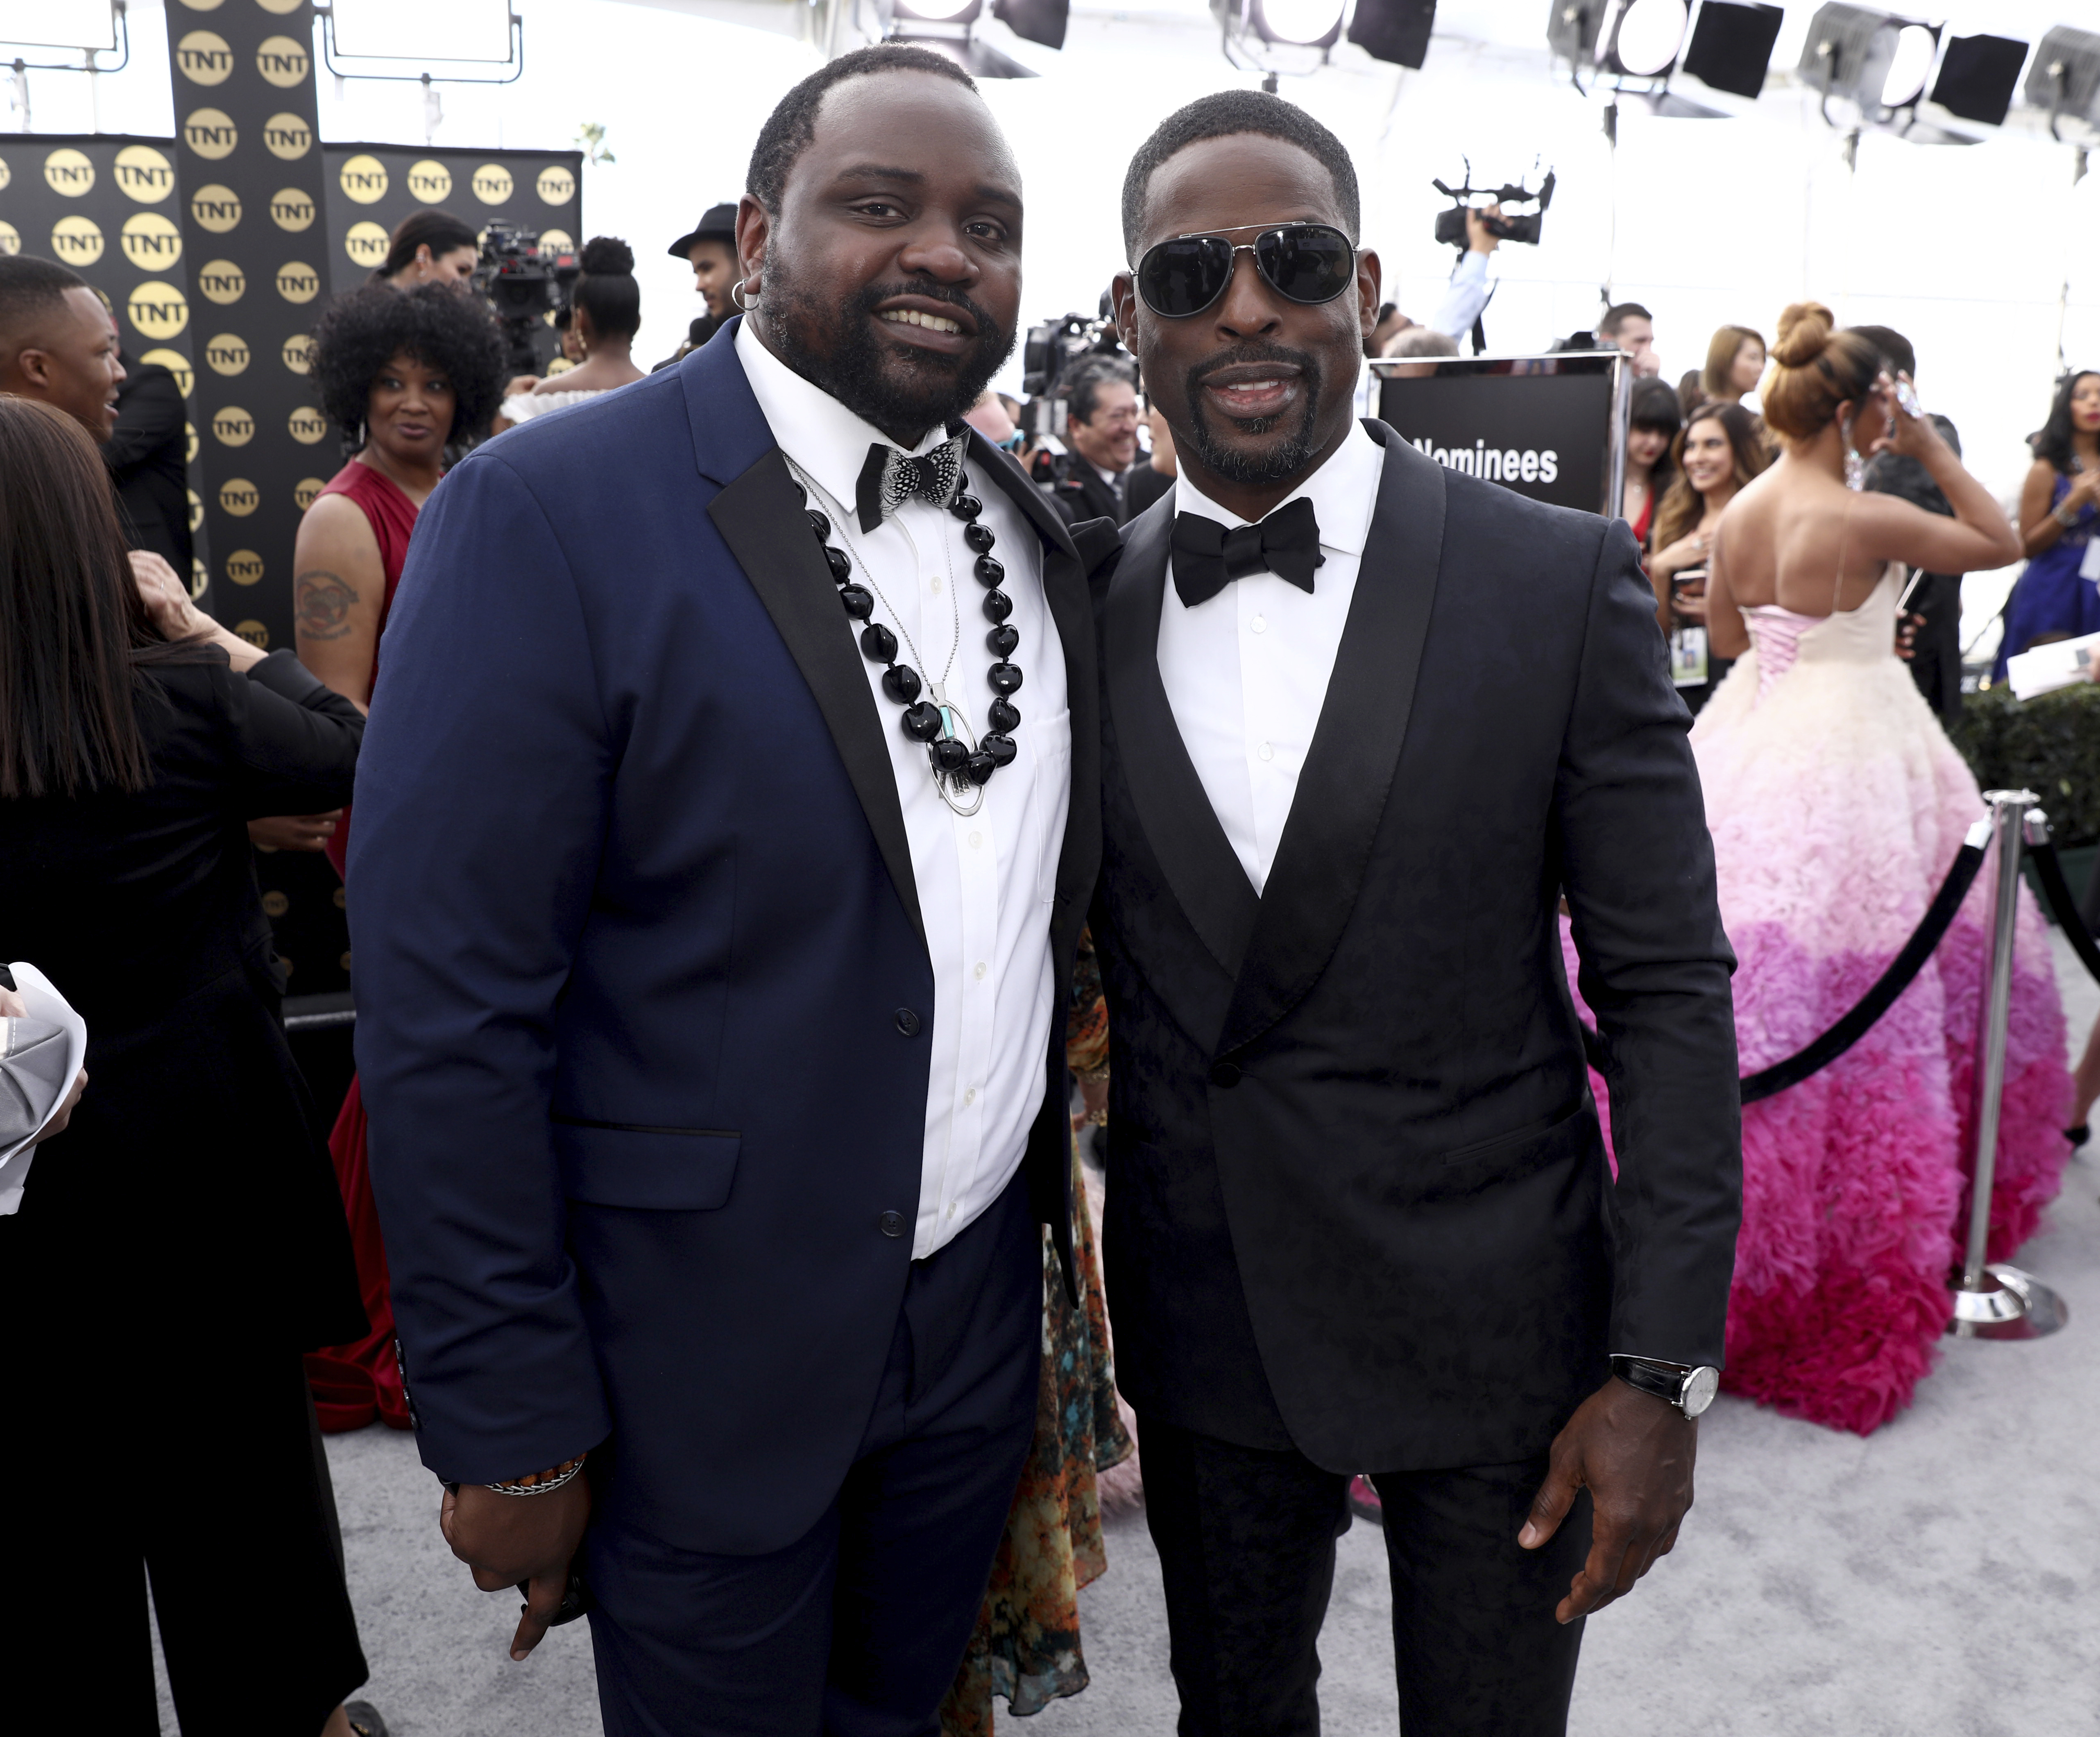 Brian Tyree Henry, left, and Sterling K. Brown arrive at the 25th annual Screen Actors Guild Awards at the Shrine Auditorium & Expo Hall on Sunday, Jan. 27, 2019, in Los Angeles. (Photo by Matt Sayles/Invision/AP)